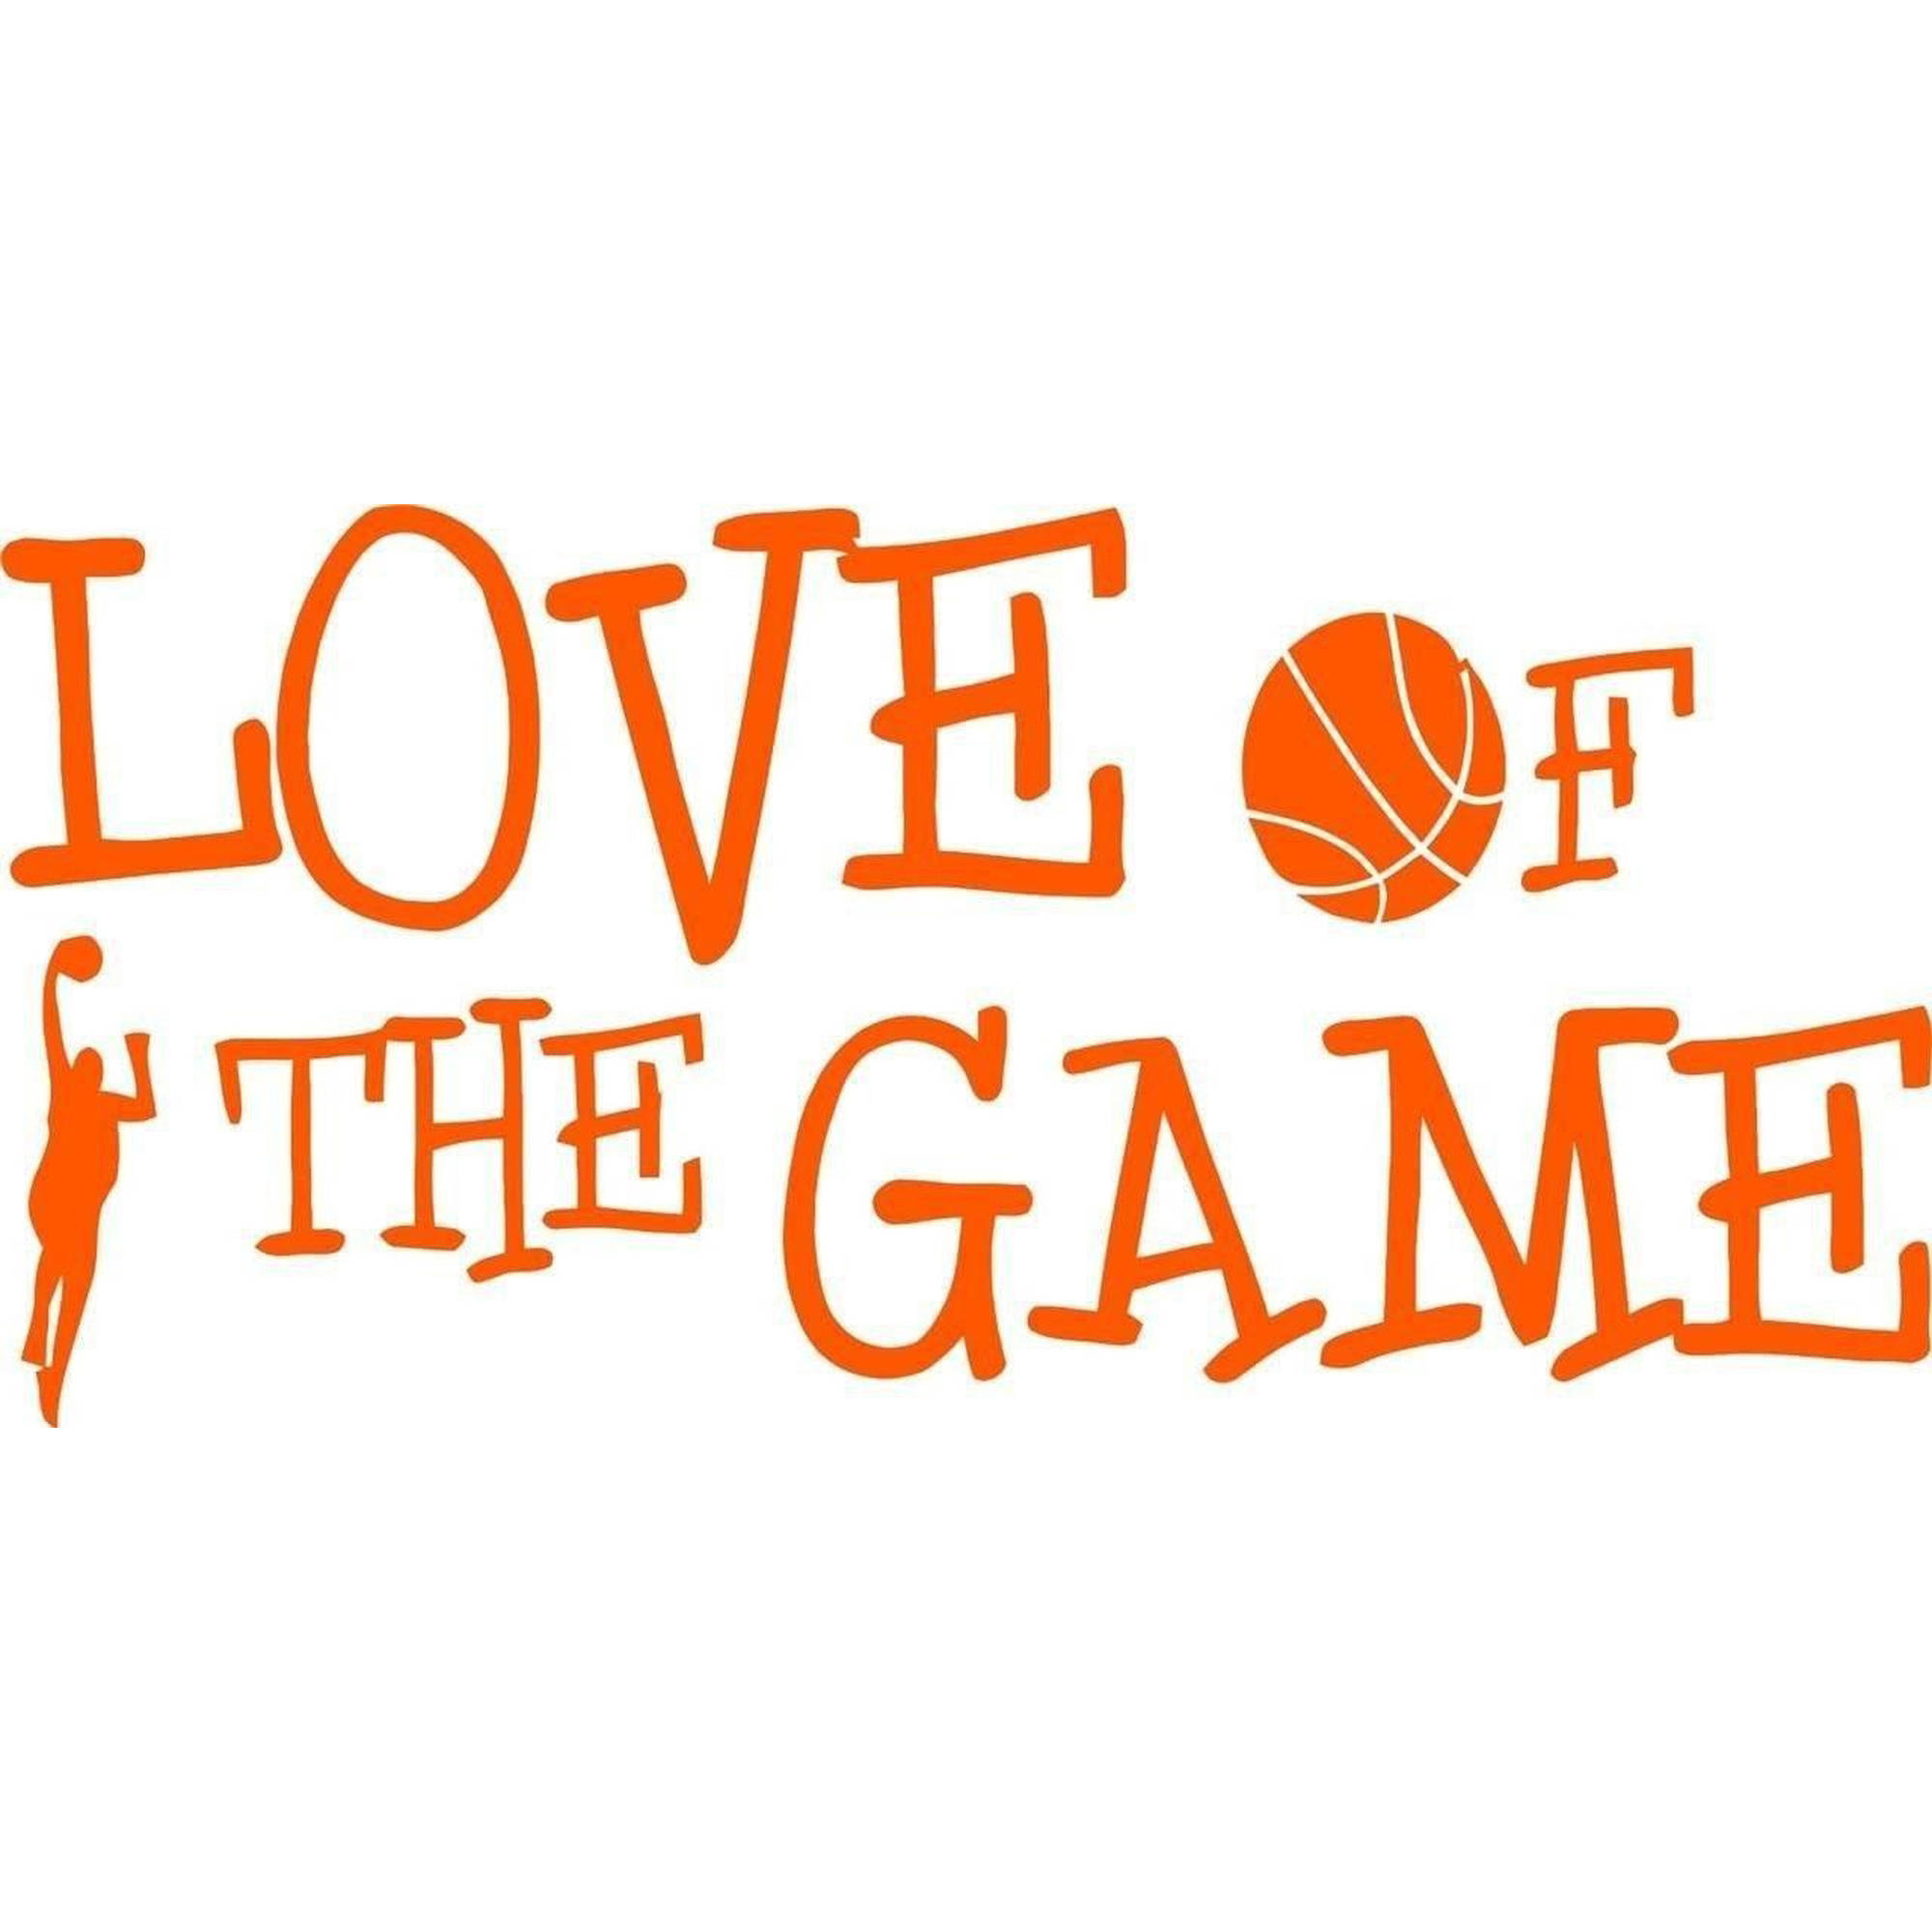 "Love Of The Game Basketball Sports Bedroom Vinyl Wall Decal, 7"" x 20"", Orange"